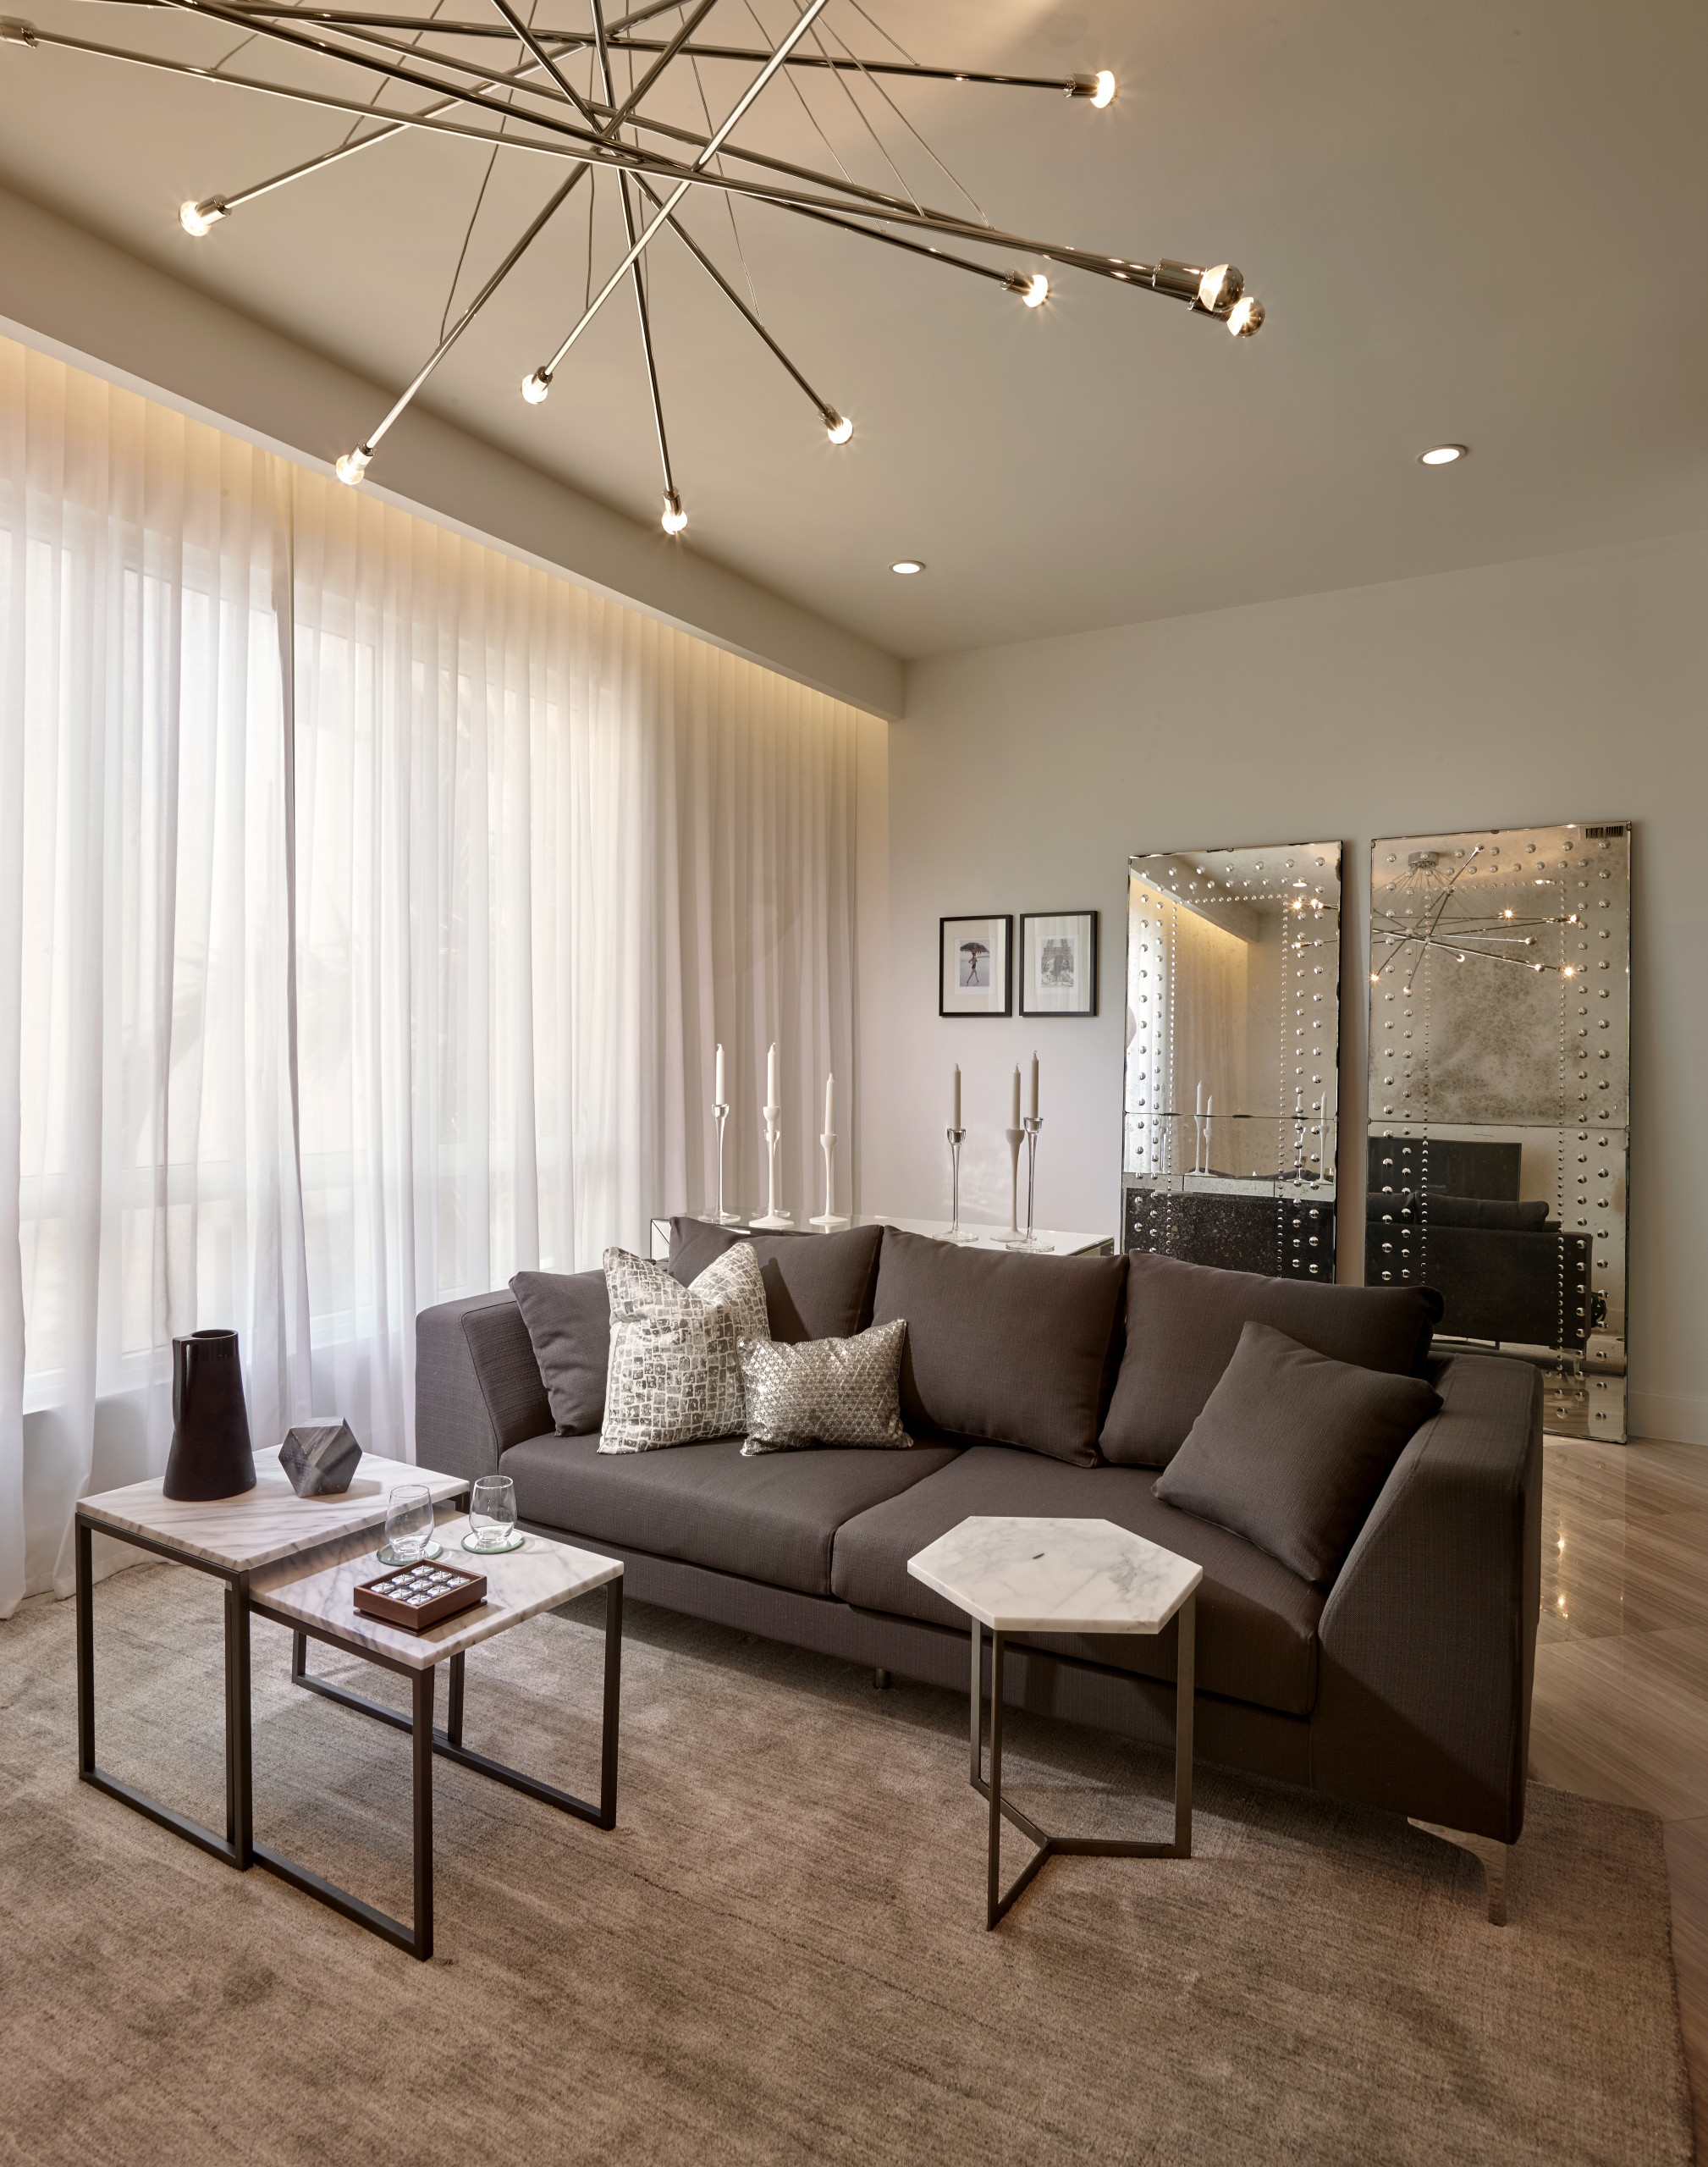 75 Beautiful Brown Marble Floor Living Room Pictures Ideas December 2020 Houzz